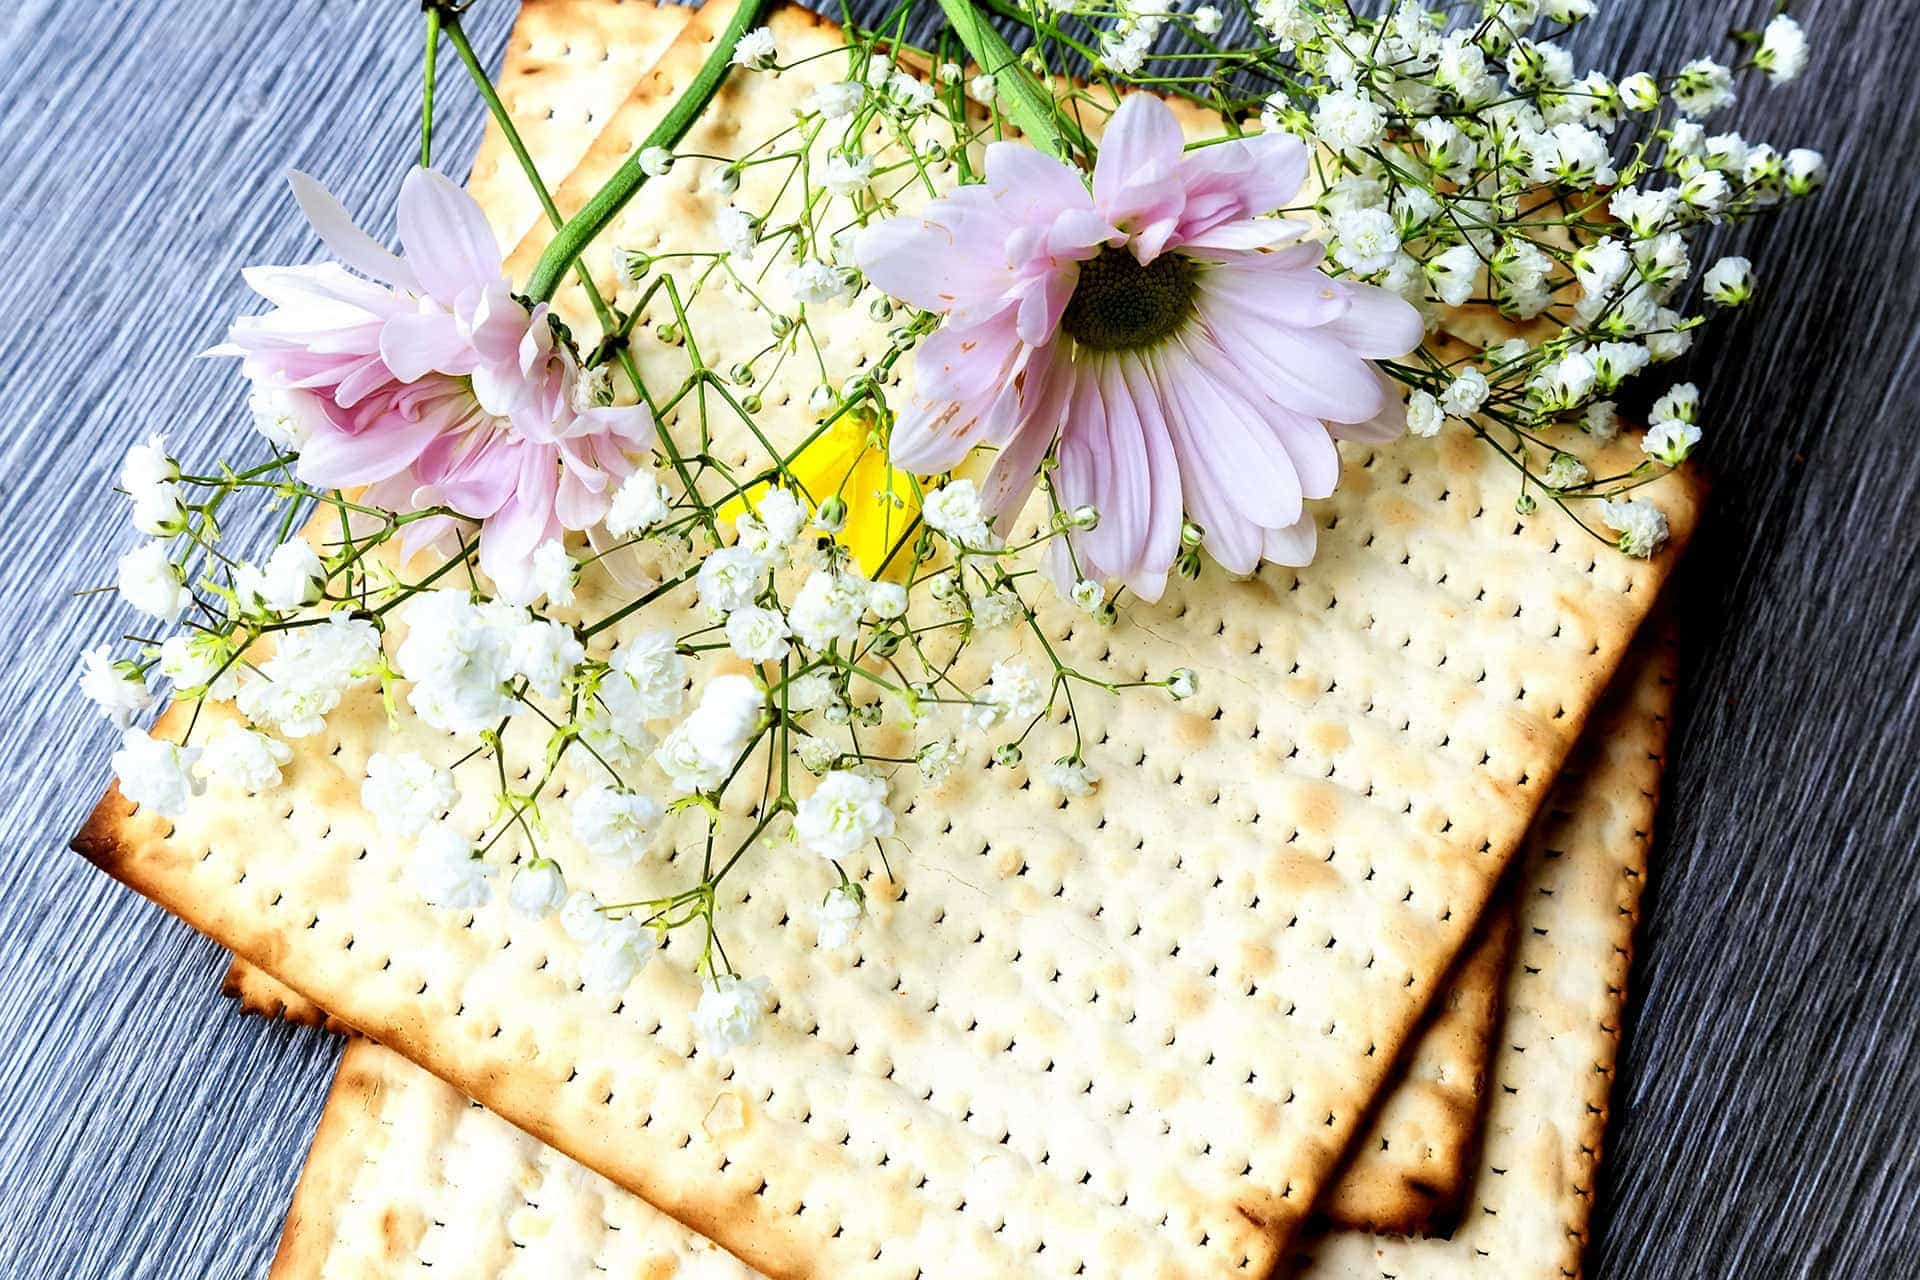 Feasts of the Lord: The Feast of Unleavened Bread for Christians